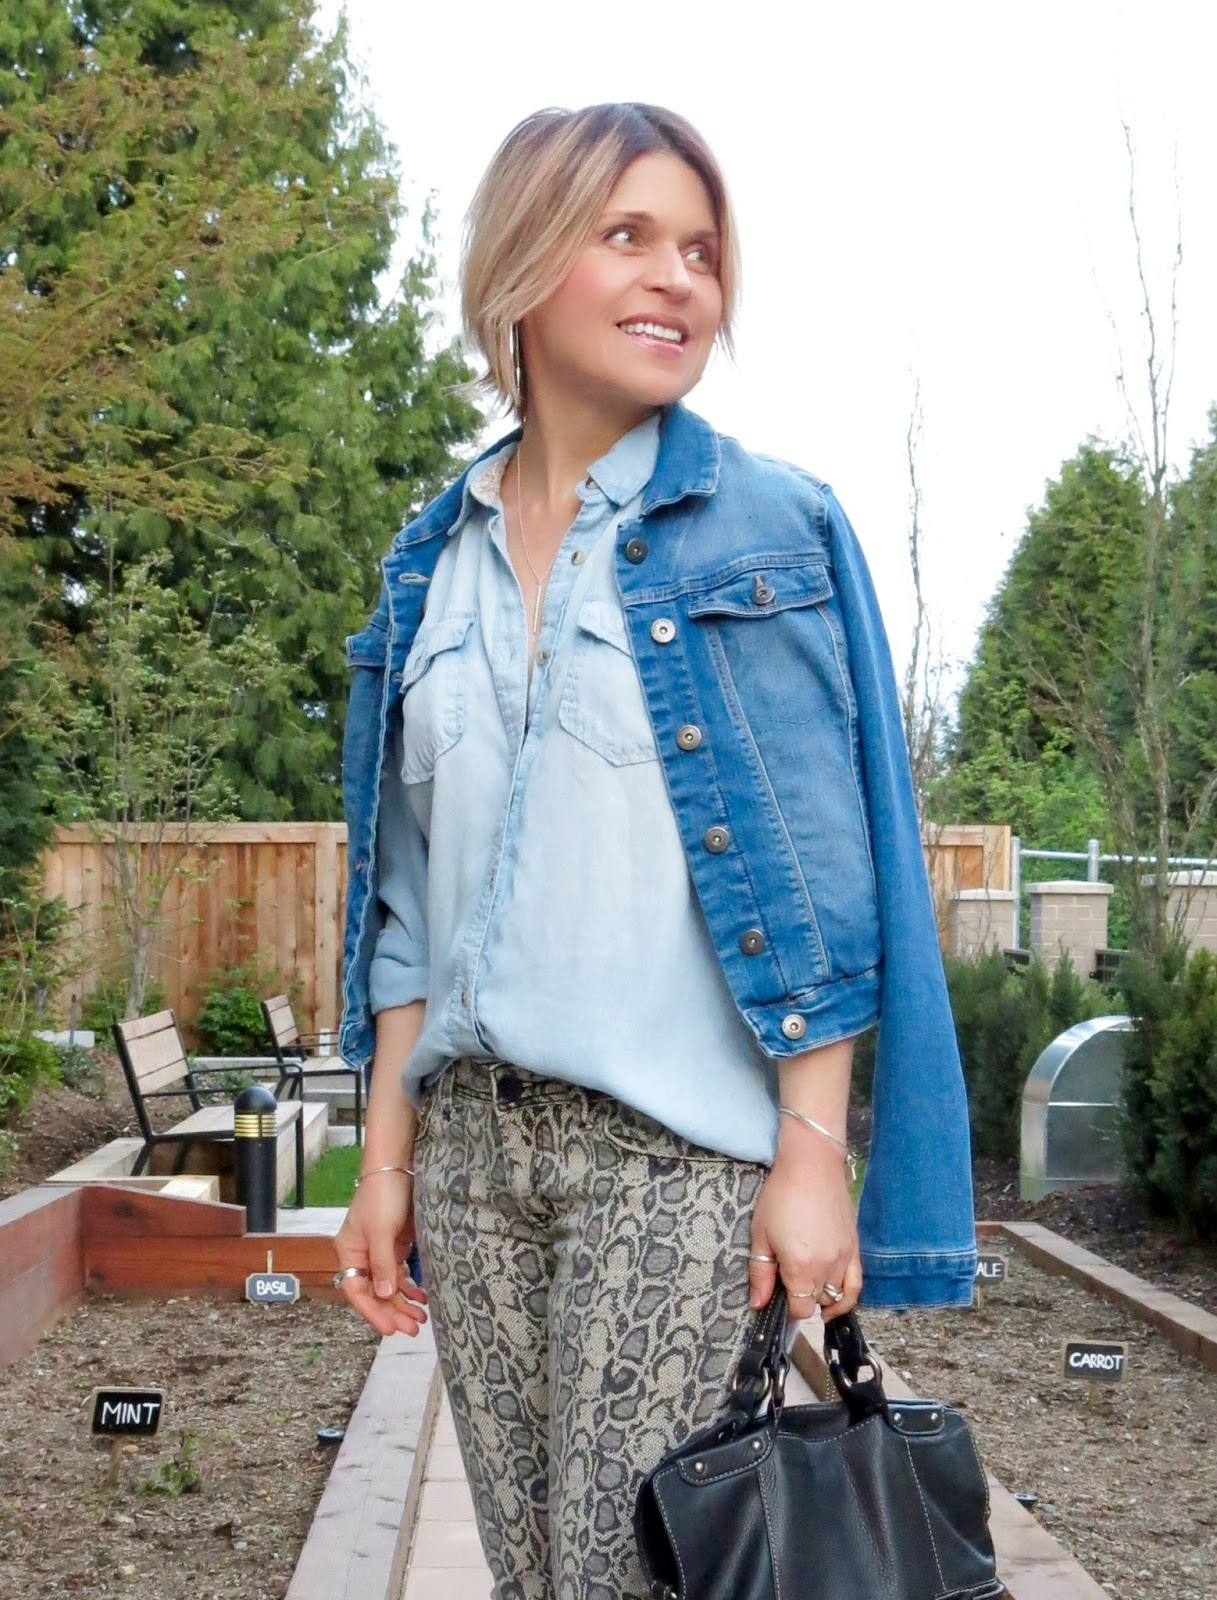 snakeskin-patterned jeans, chambray shirt and denim jacket